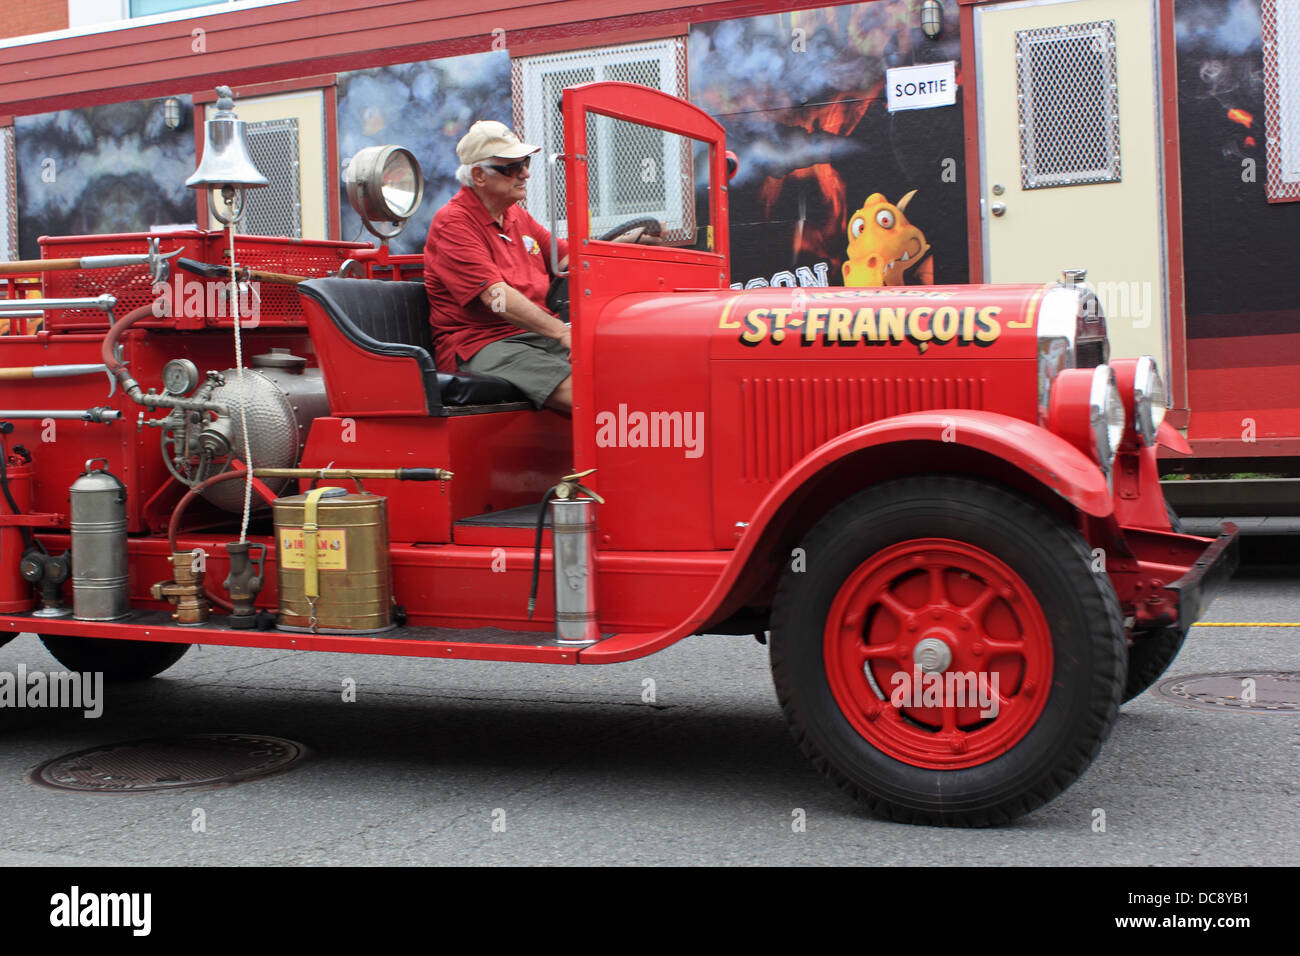 Firefighter festival in Canada. - Stock Image